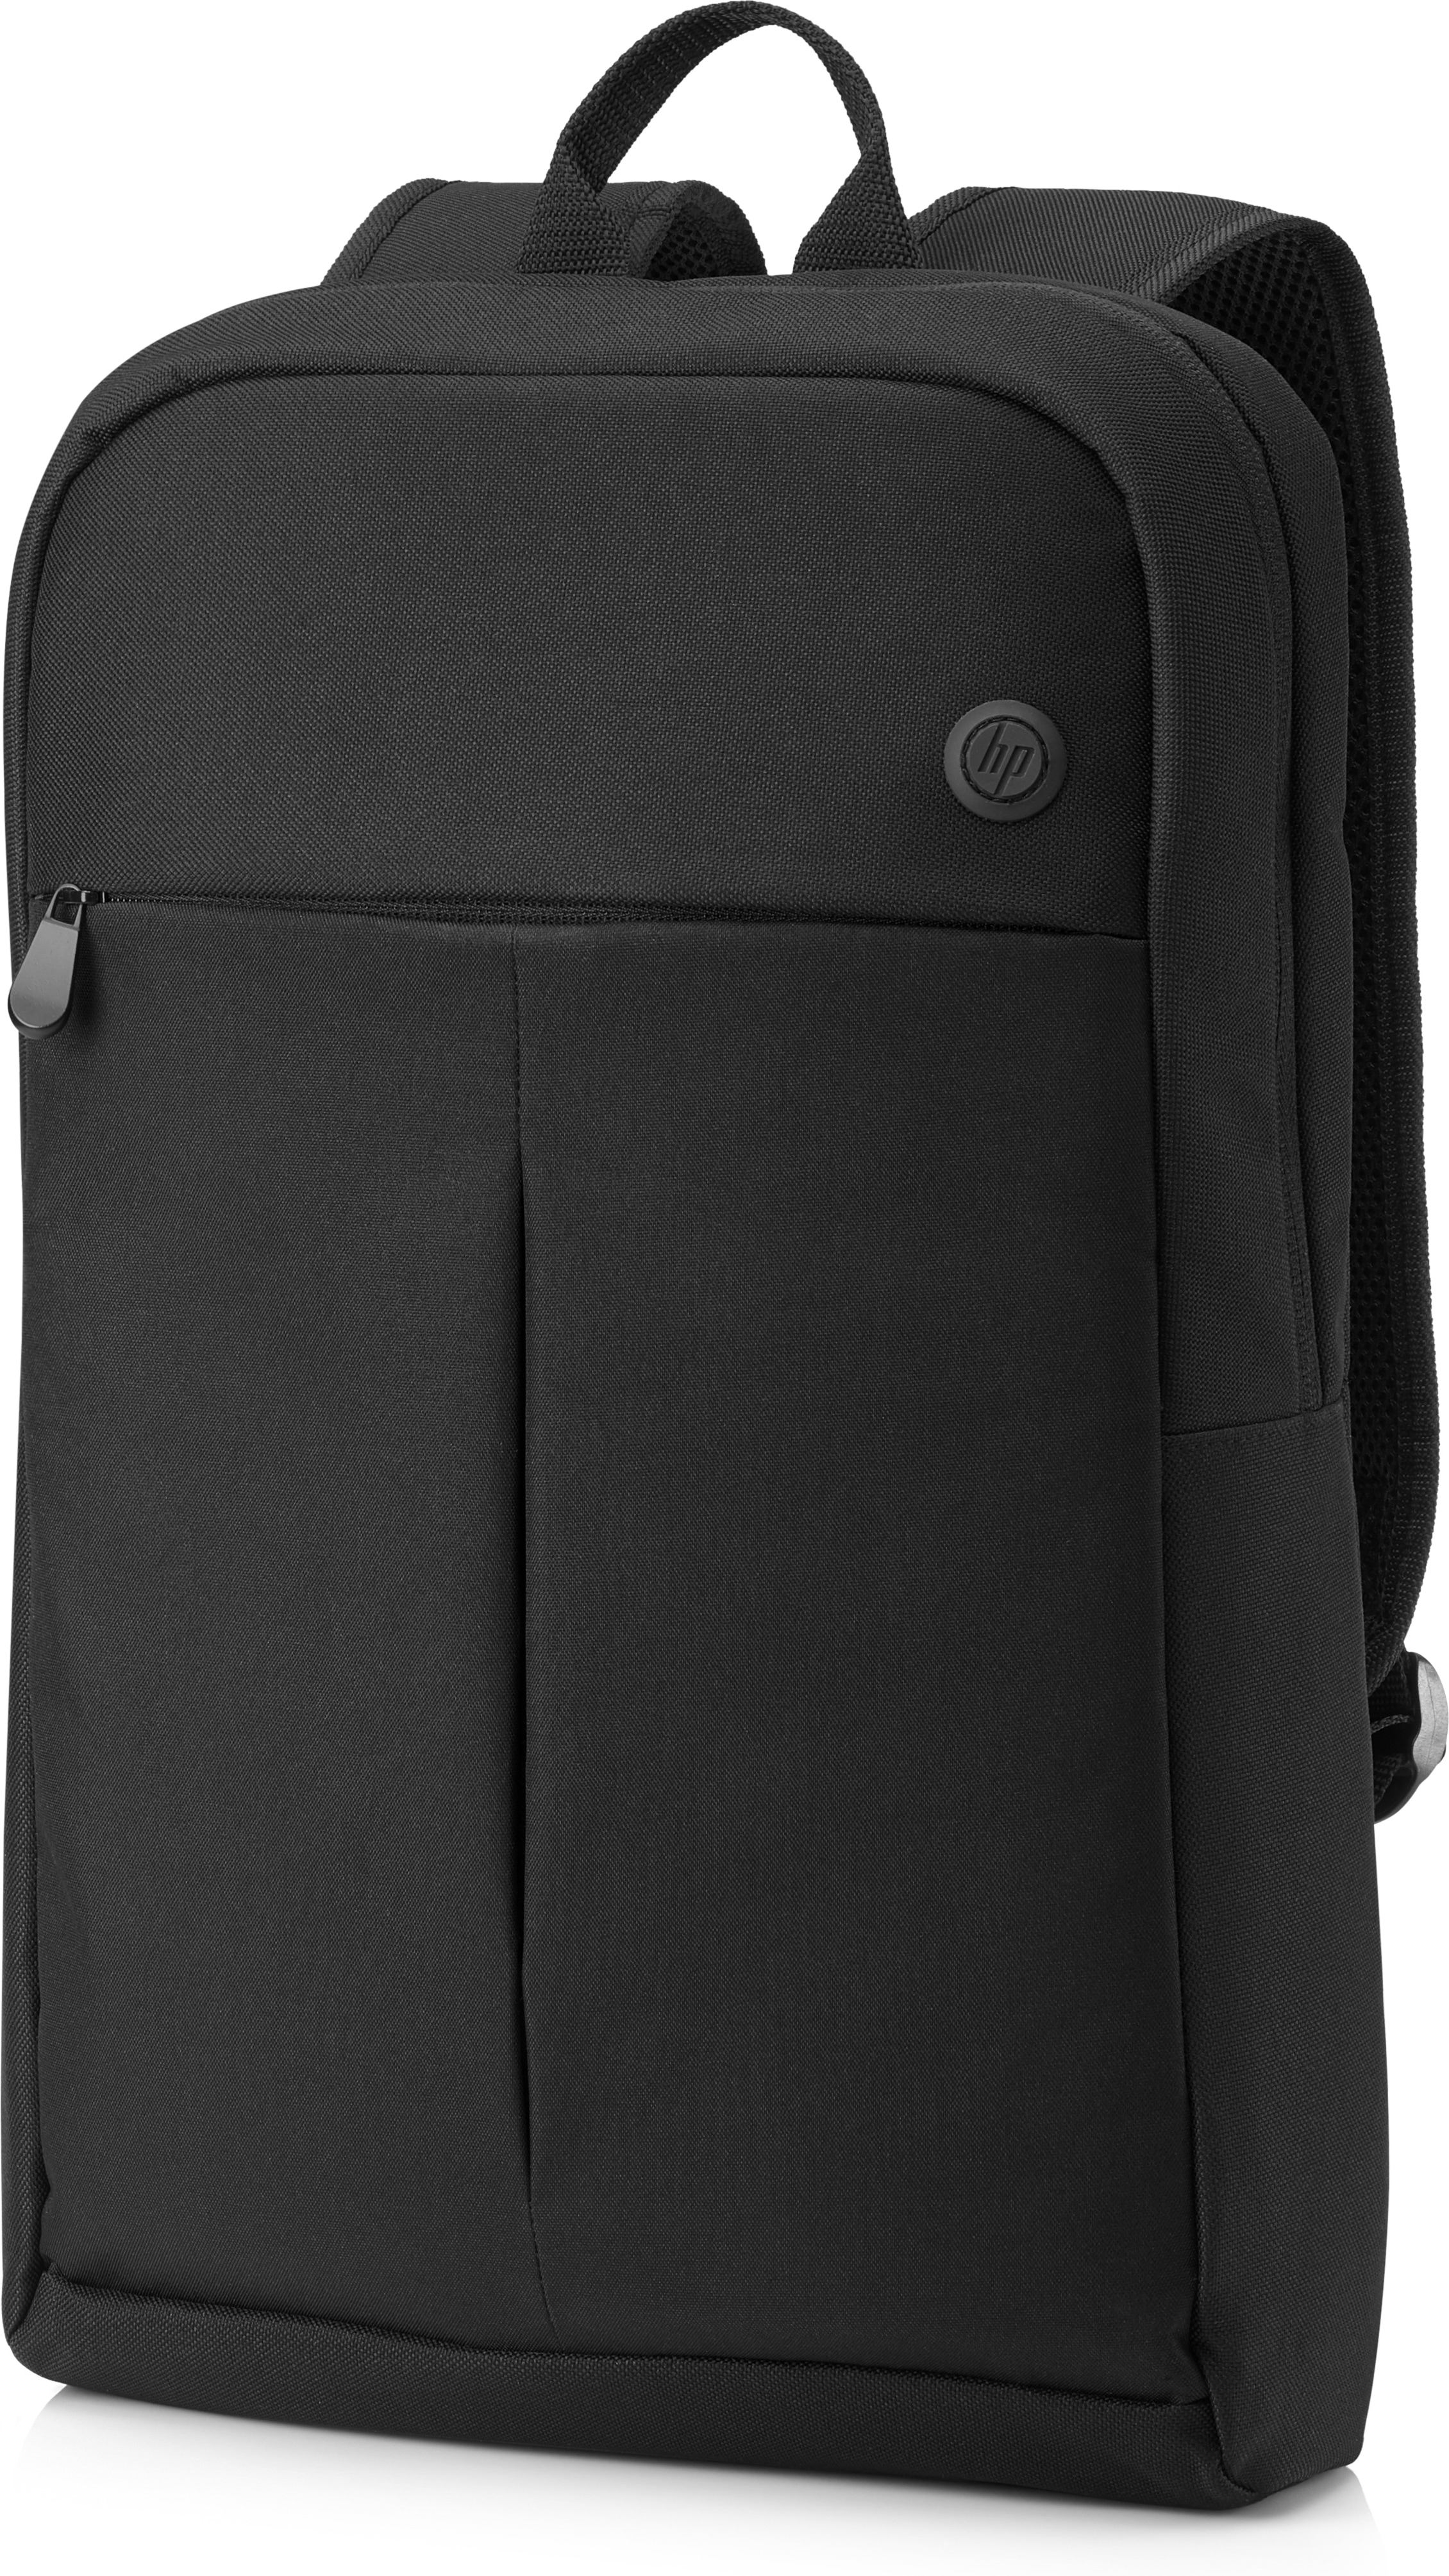 329e3fe704a HP Prelude Backpack 15.6 (2MW63AA#AC3) kopen » Centralpoint